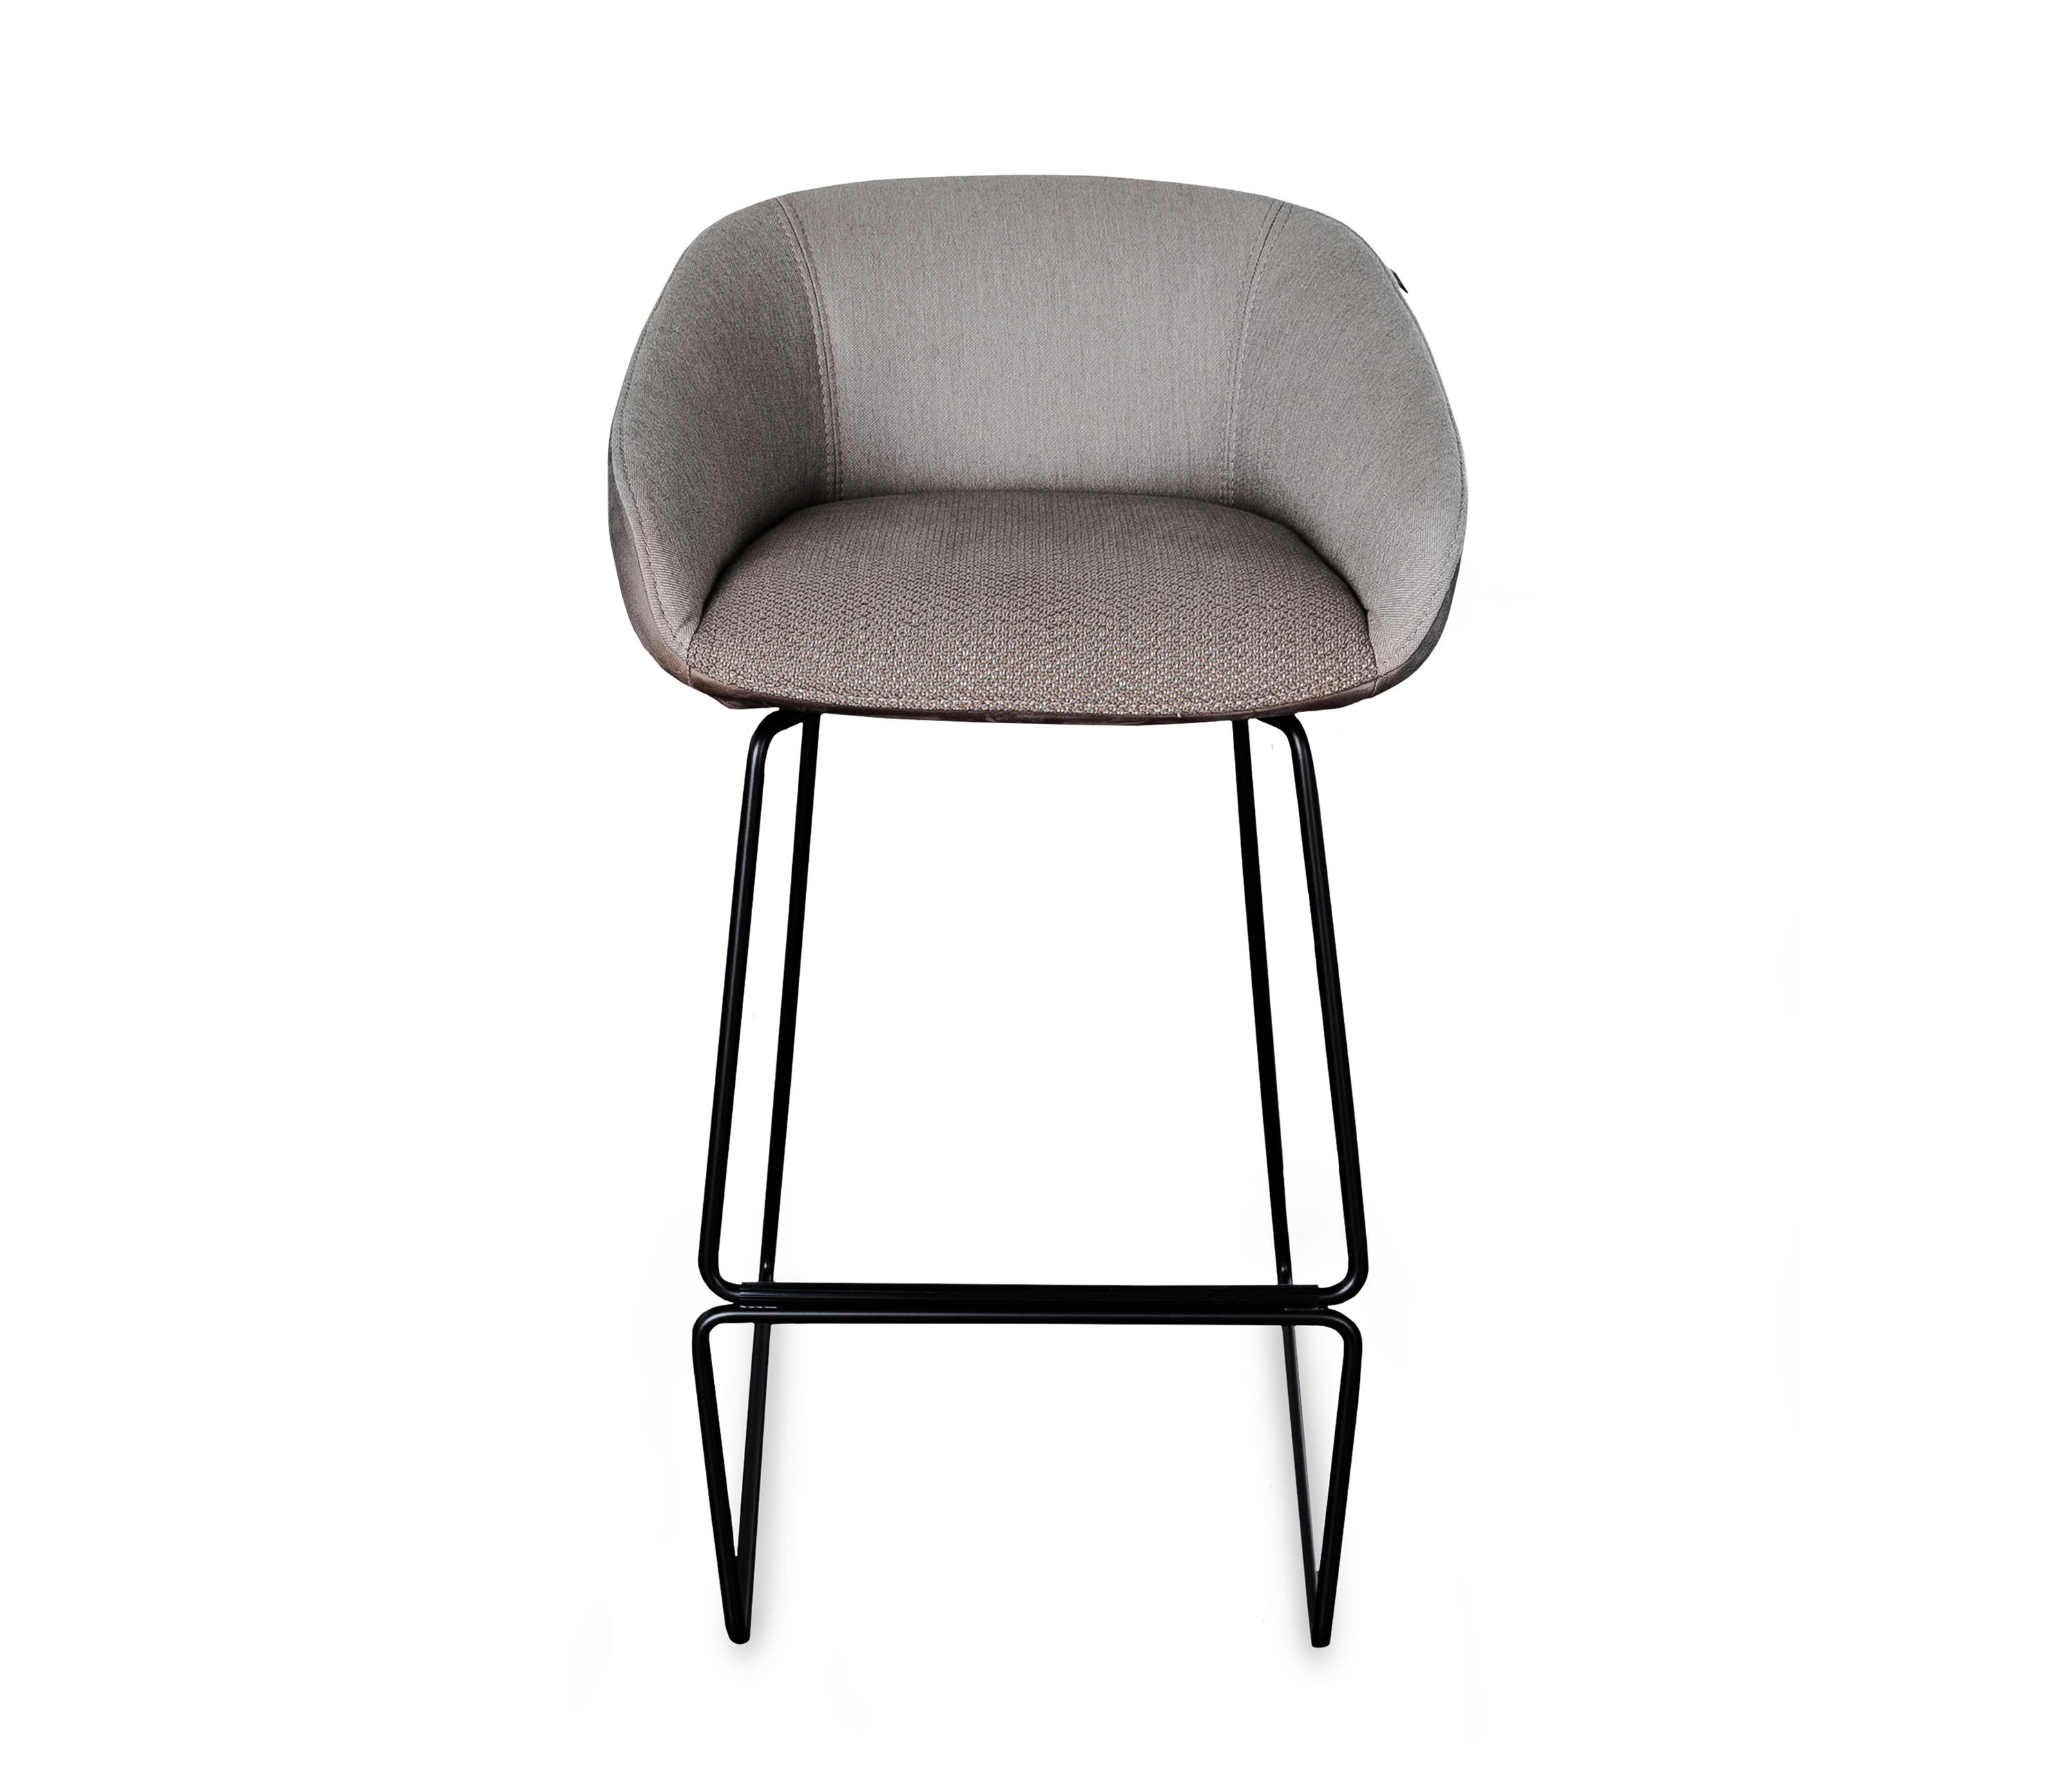 Sensational Perch Bar Stools From Ikono Architonic Short Links Chair Design For Home Short Linksinfo